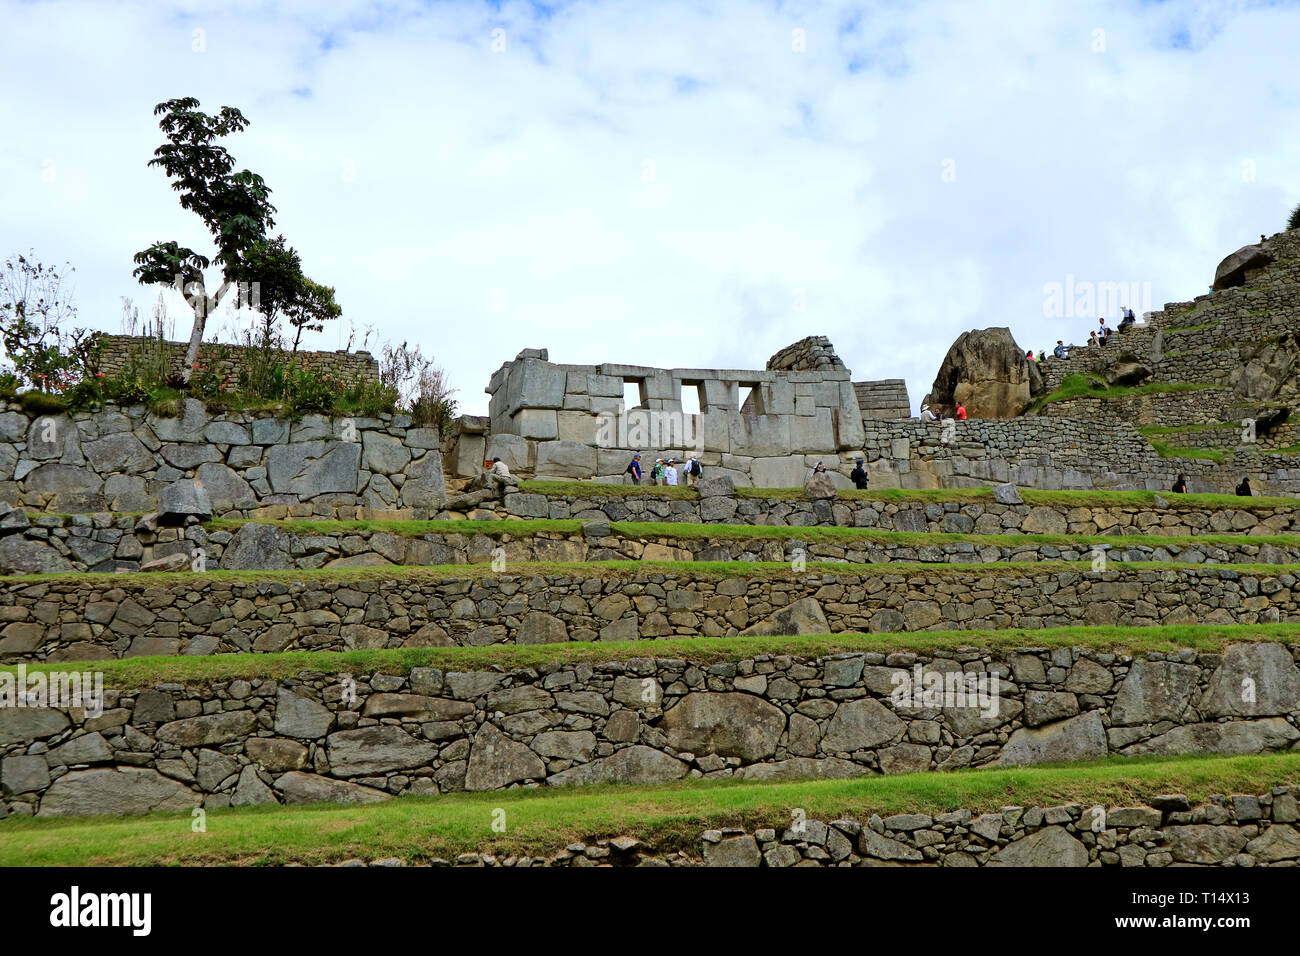 The Remains of Temple of the Three Window in Machu Picchu Inca Citadel, Archaeological site in Cusco, Peru Stock Photo